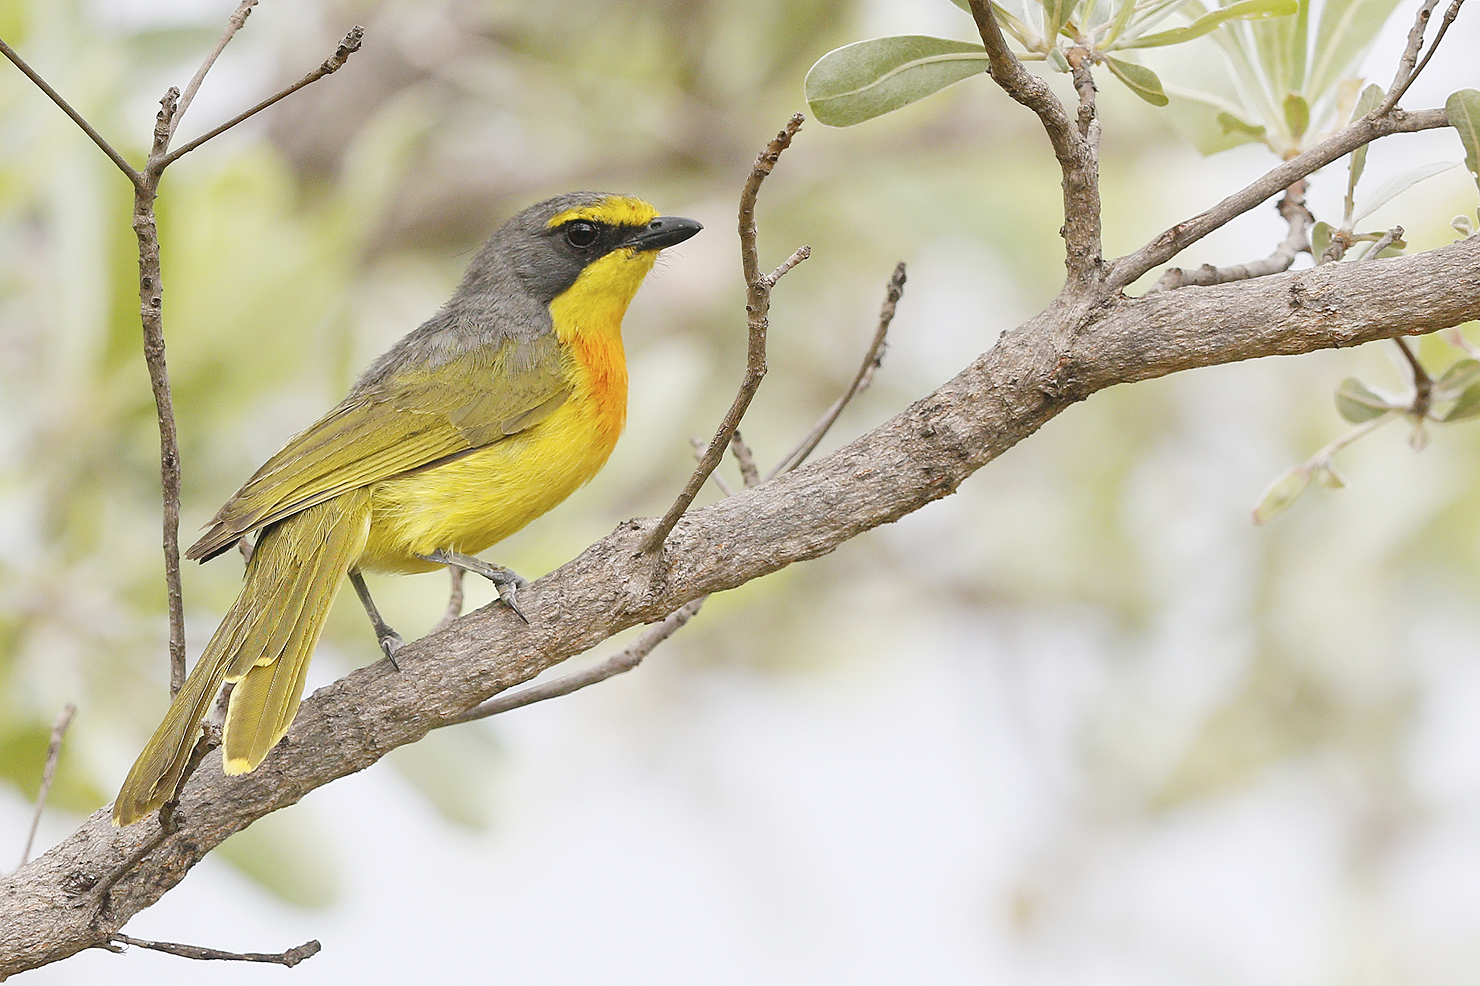 Orange-breasted-Bush-shrike-adult-Mabula-Game-Reserve-Waterberg-South-Africa-07-January-2015-BEST-2-CR-SMSH2